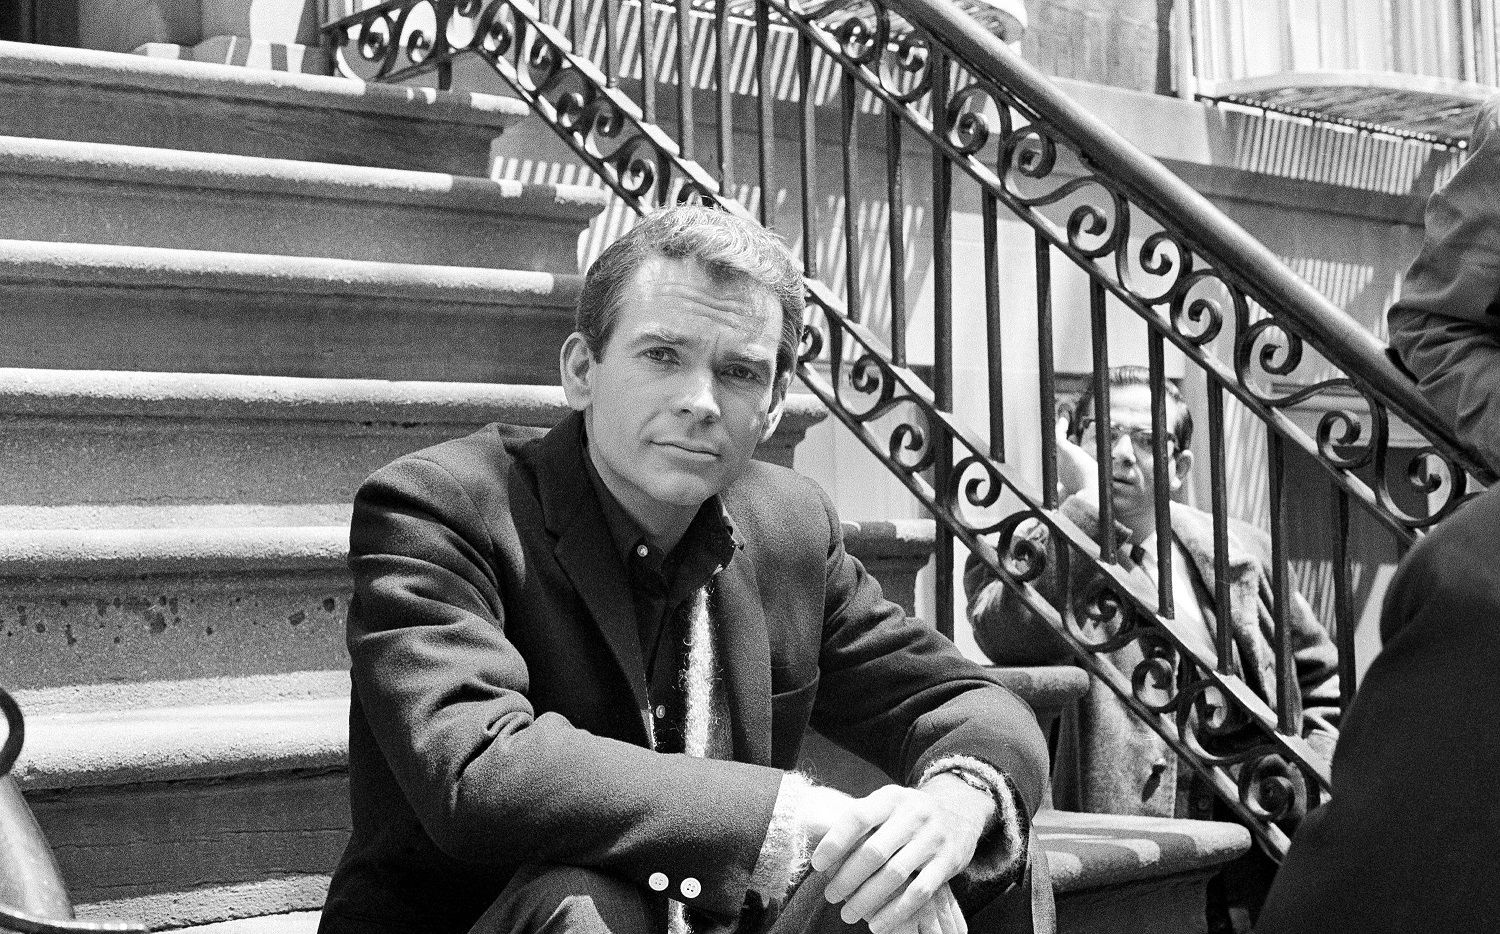 """In this May 24, 1966 file photo, actor Dean Jones, poses for a photo while on set for the Warner Bros. film, """"Any Wednesday,"""" in New York."""